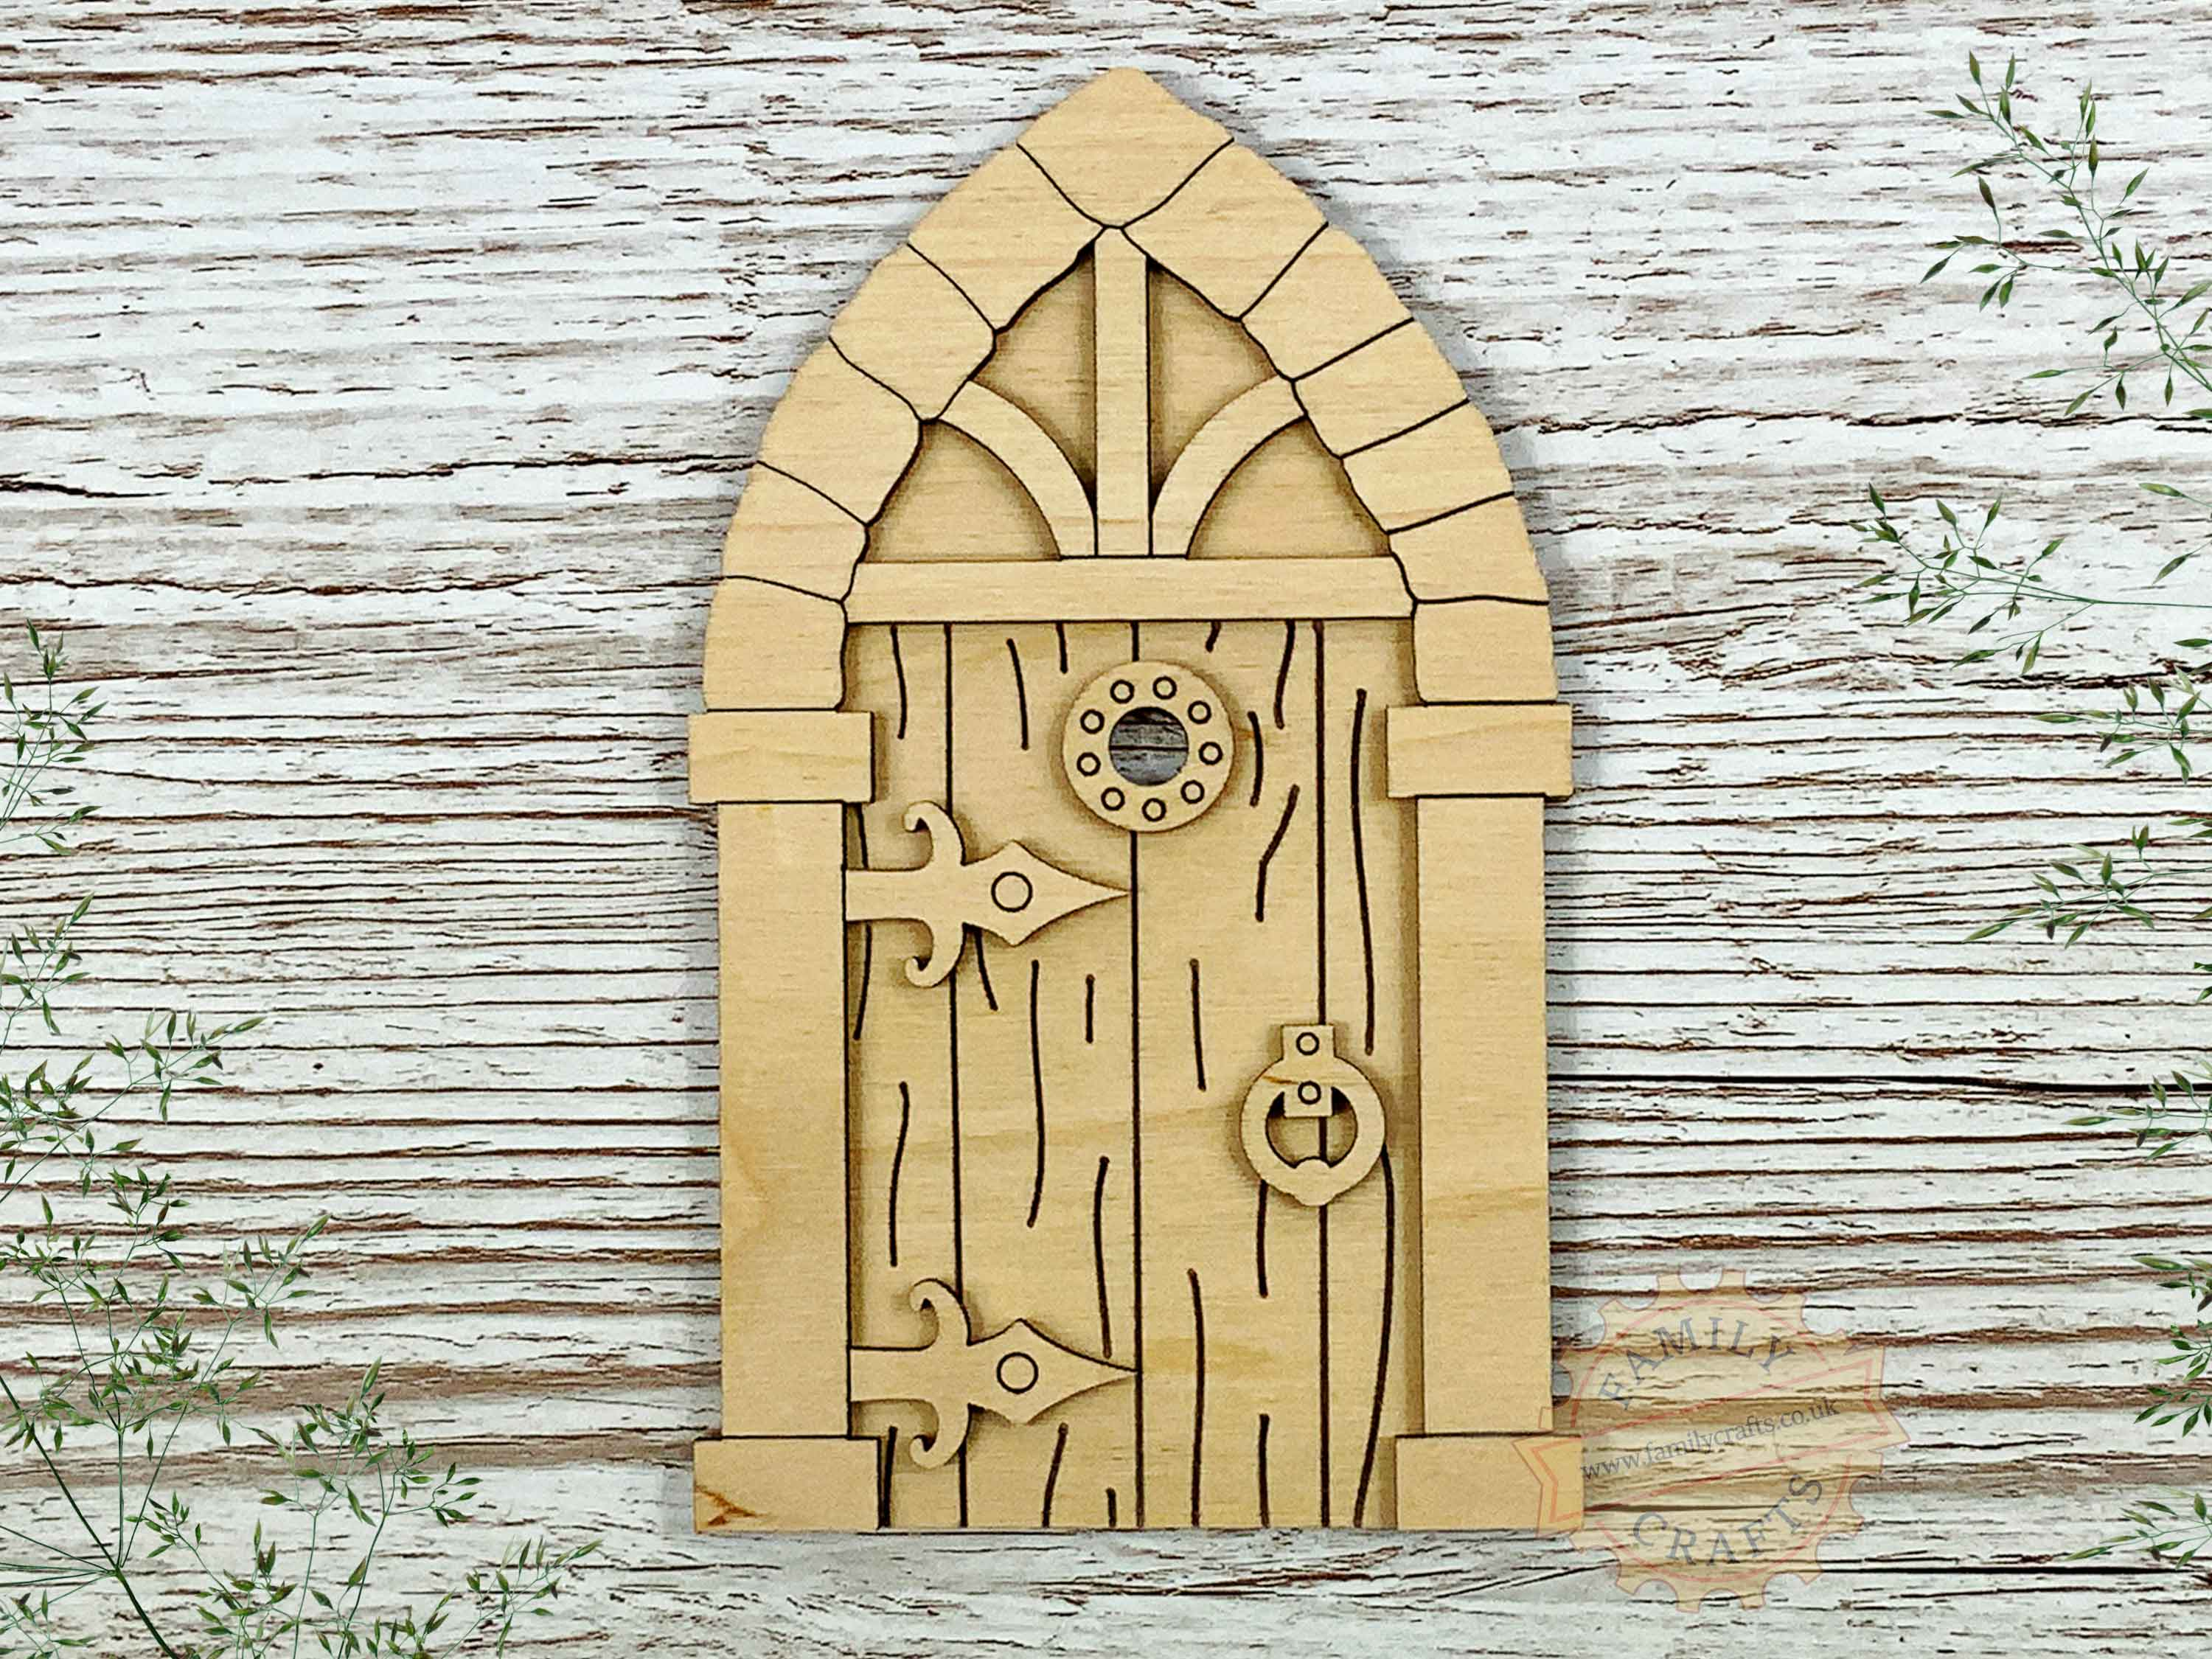 plywood medieval fairy door kit with woodgrain